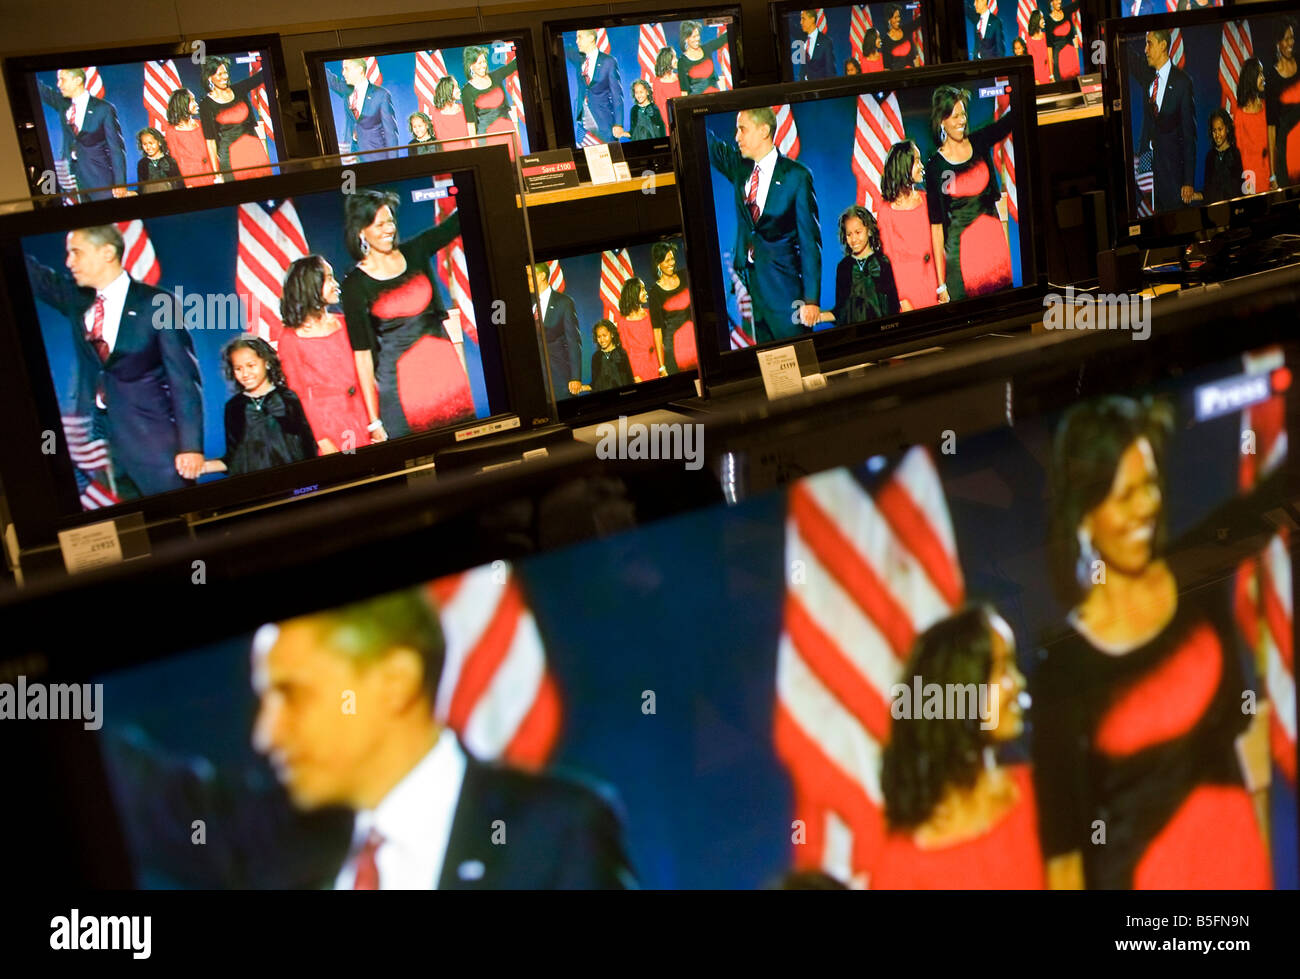 Barack Obama and family seen on BBC News TV screens in London's John Lewis department store after election victory - Stock Image